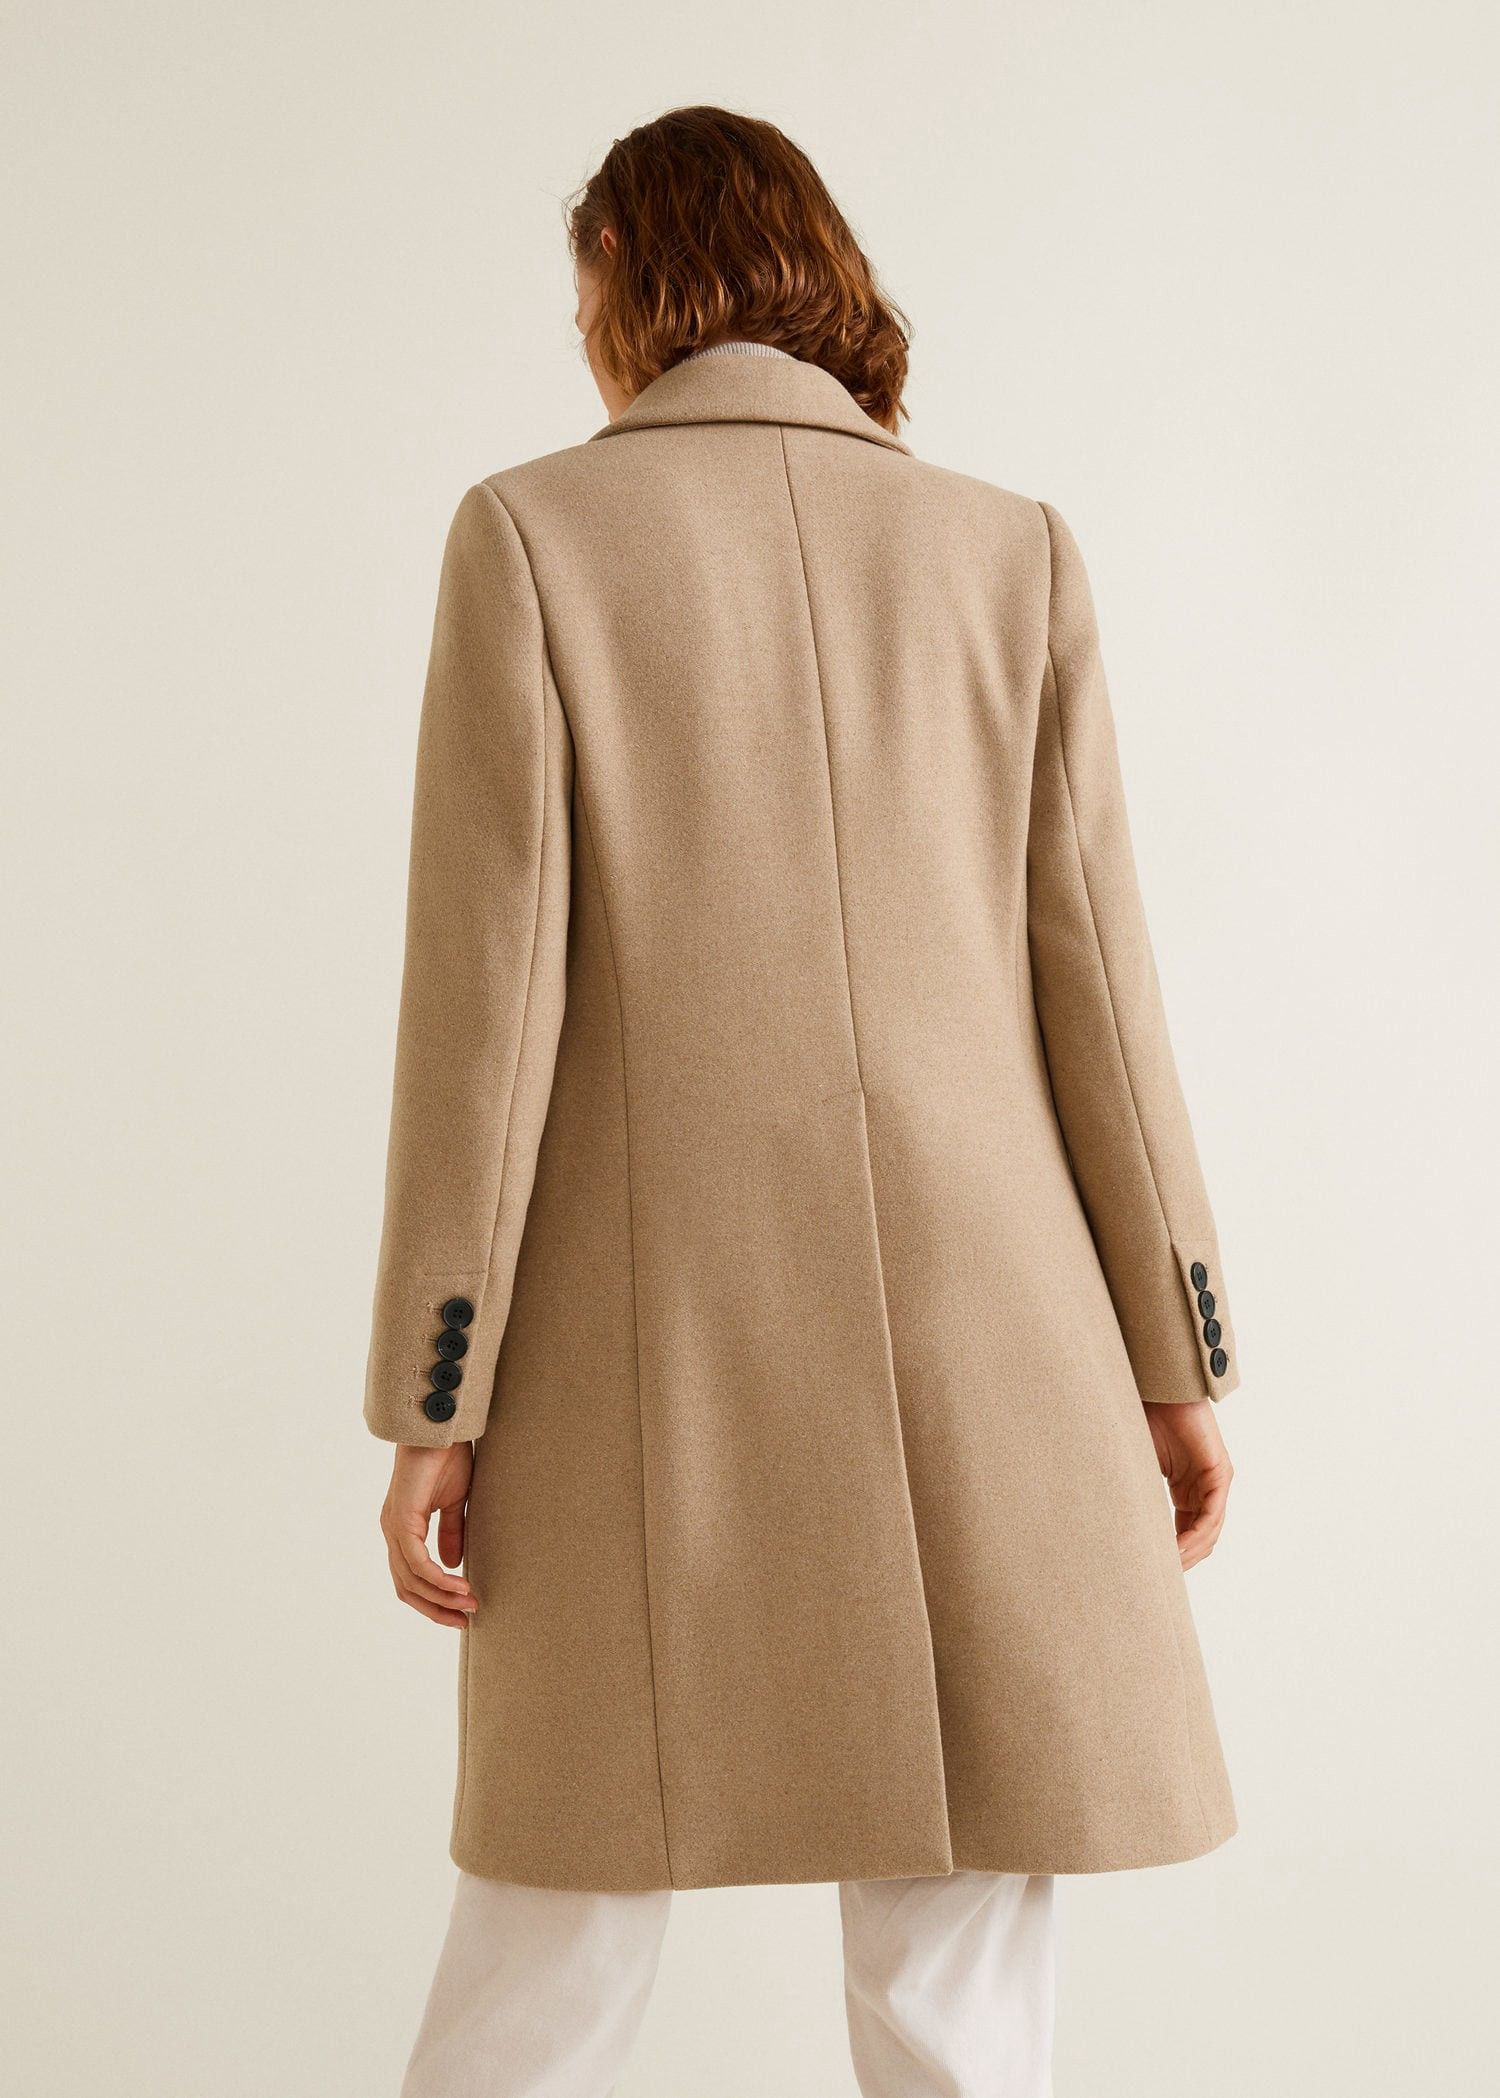 Mango Structured Wool Coat - XXS  d4033e83a